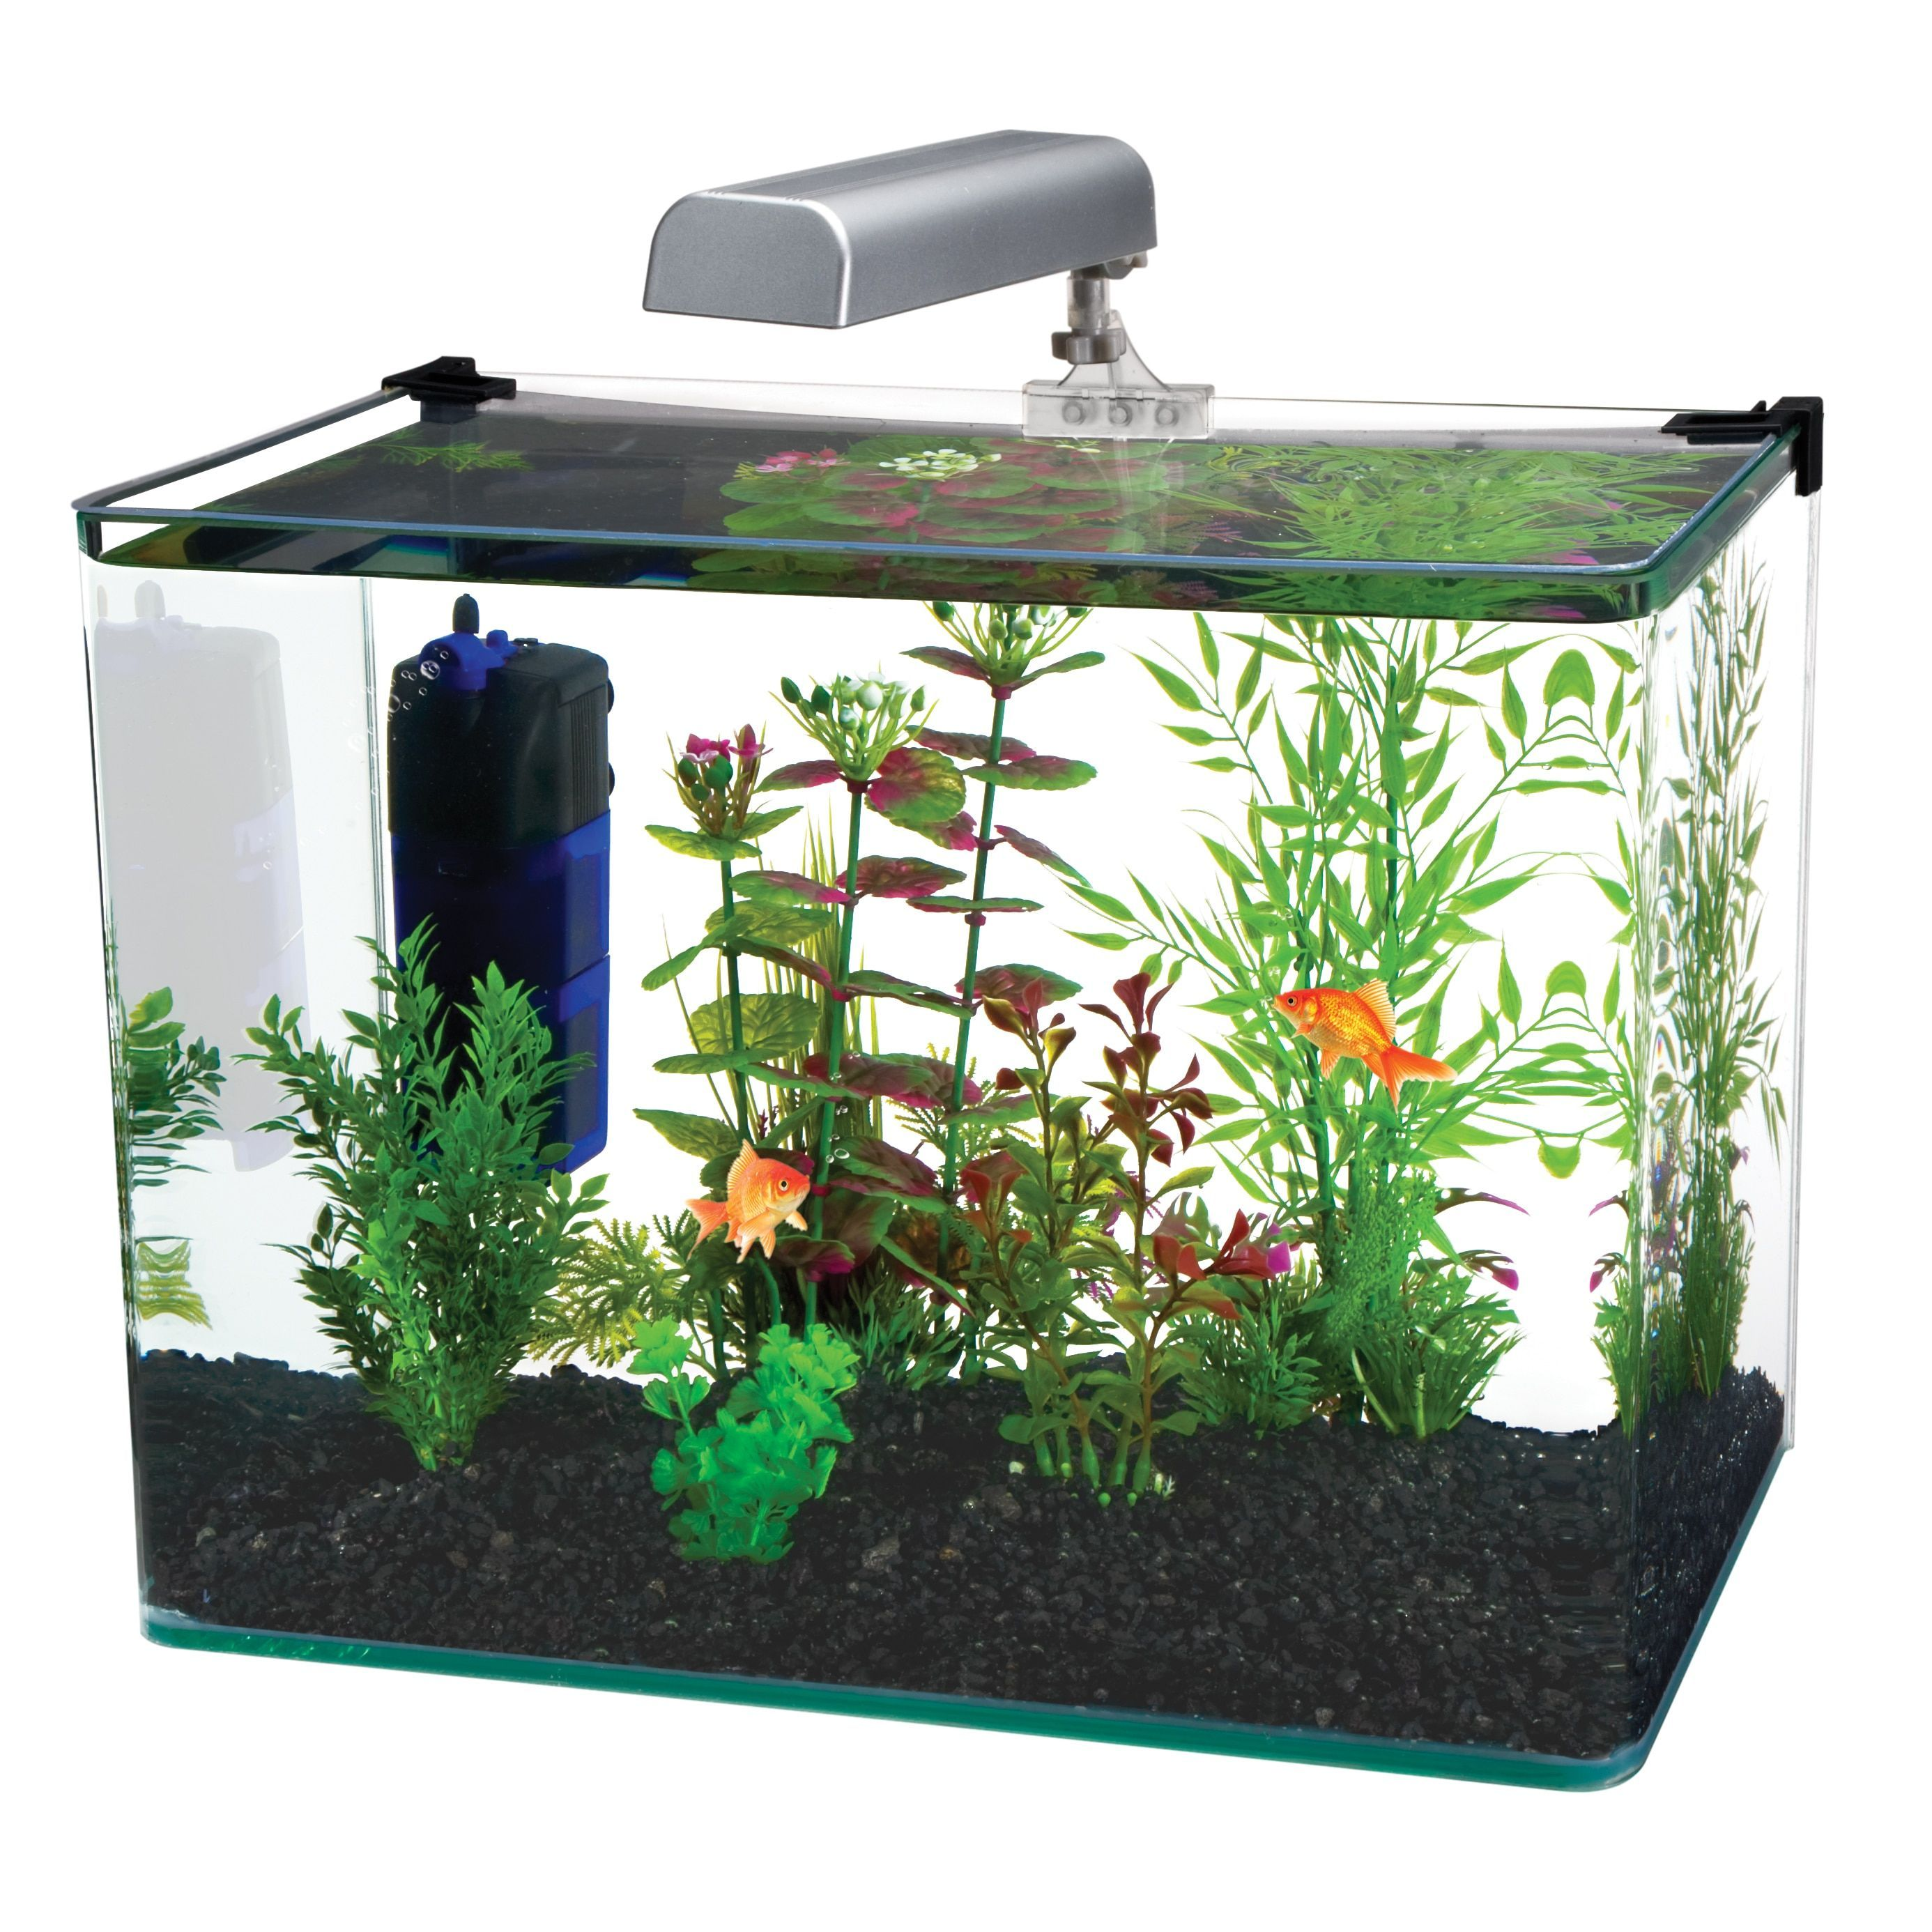 Fluval Spec III Aquarium Kit 2 6 Gallon $56